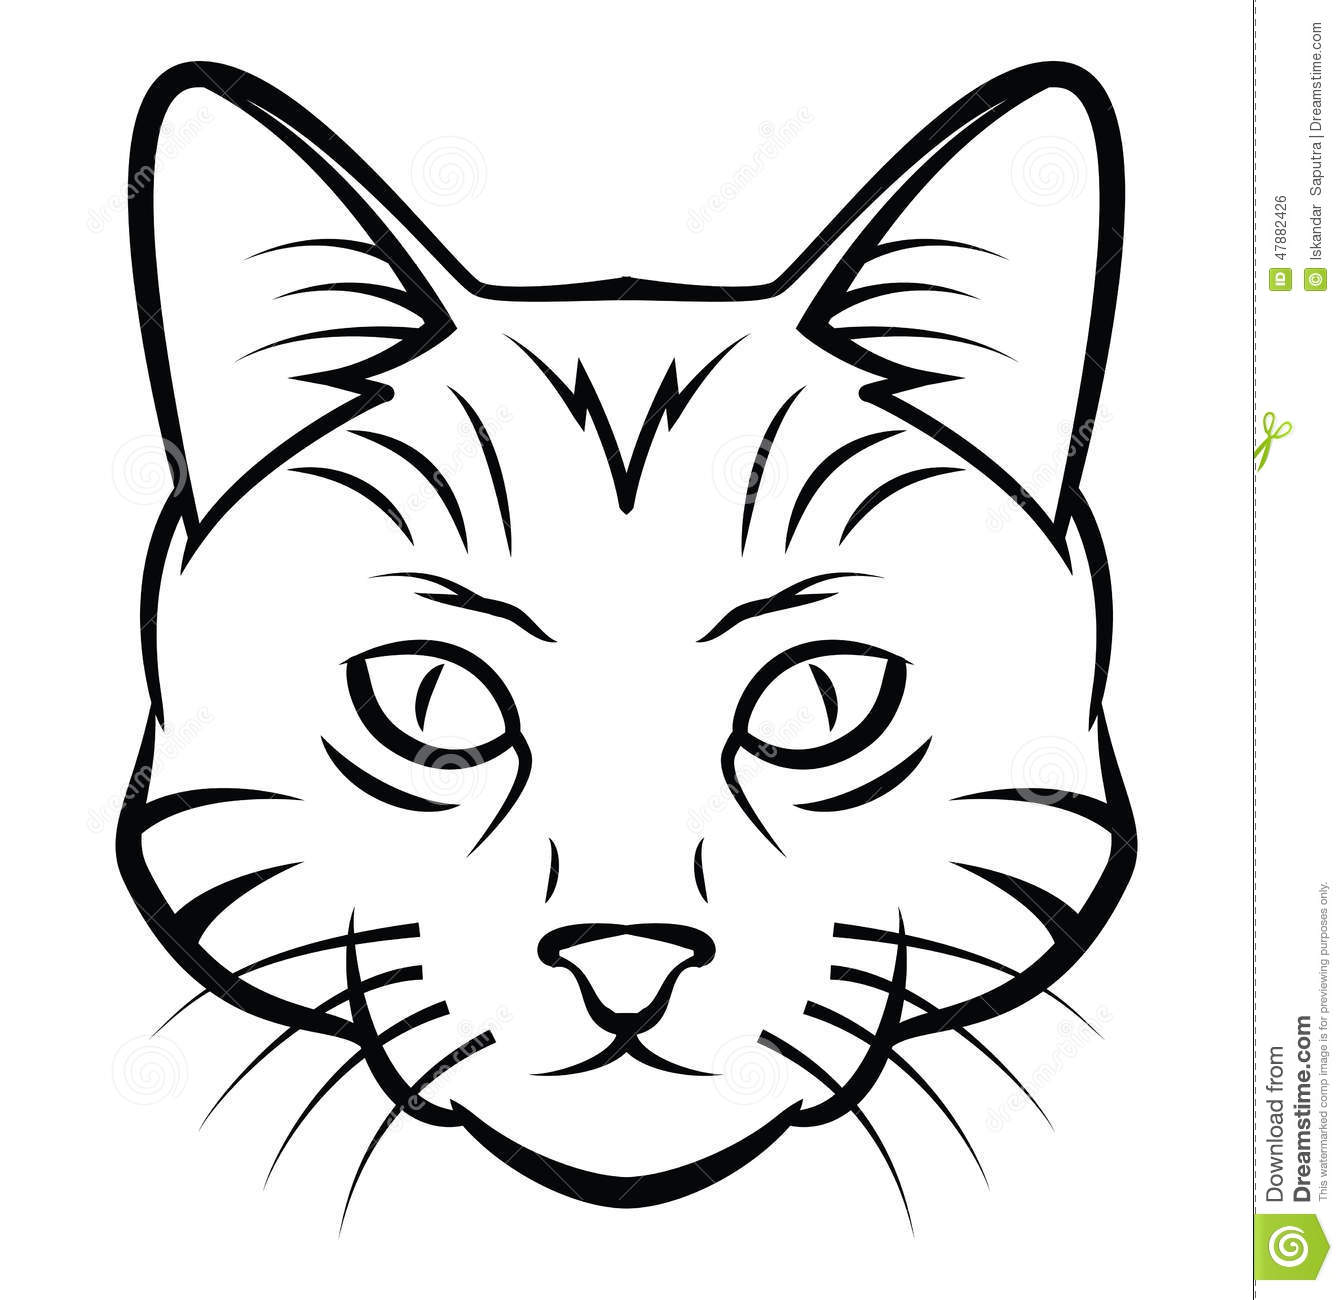 Line Drawing Of A Cat Face : Cat head tattoo vector illustration stock